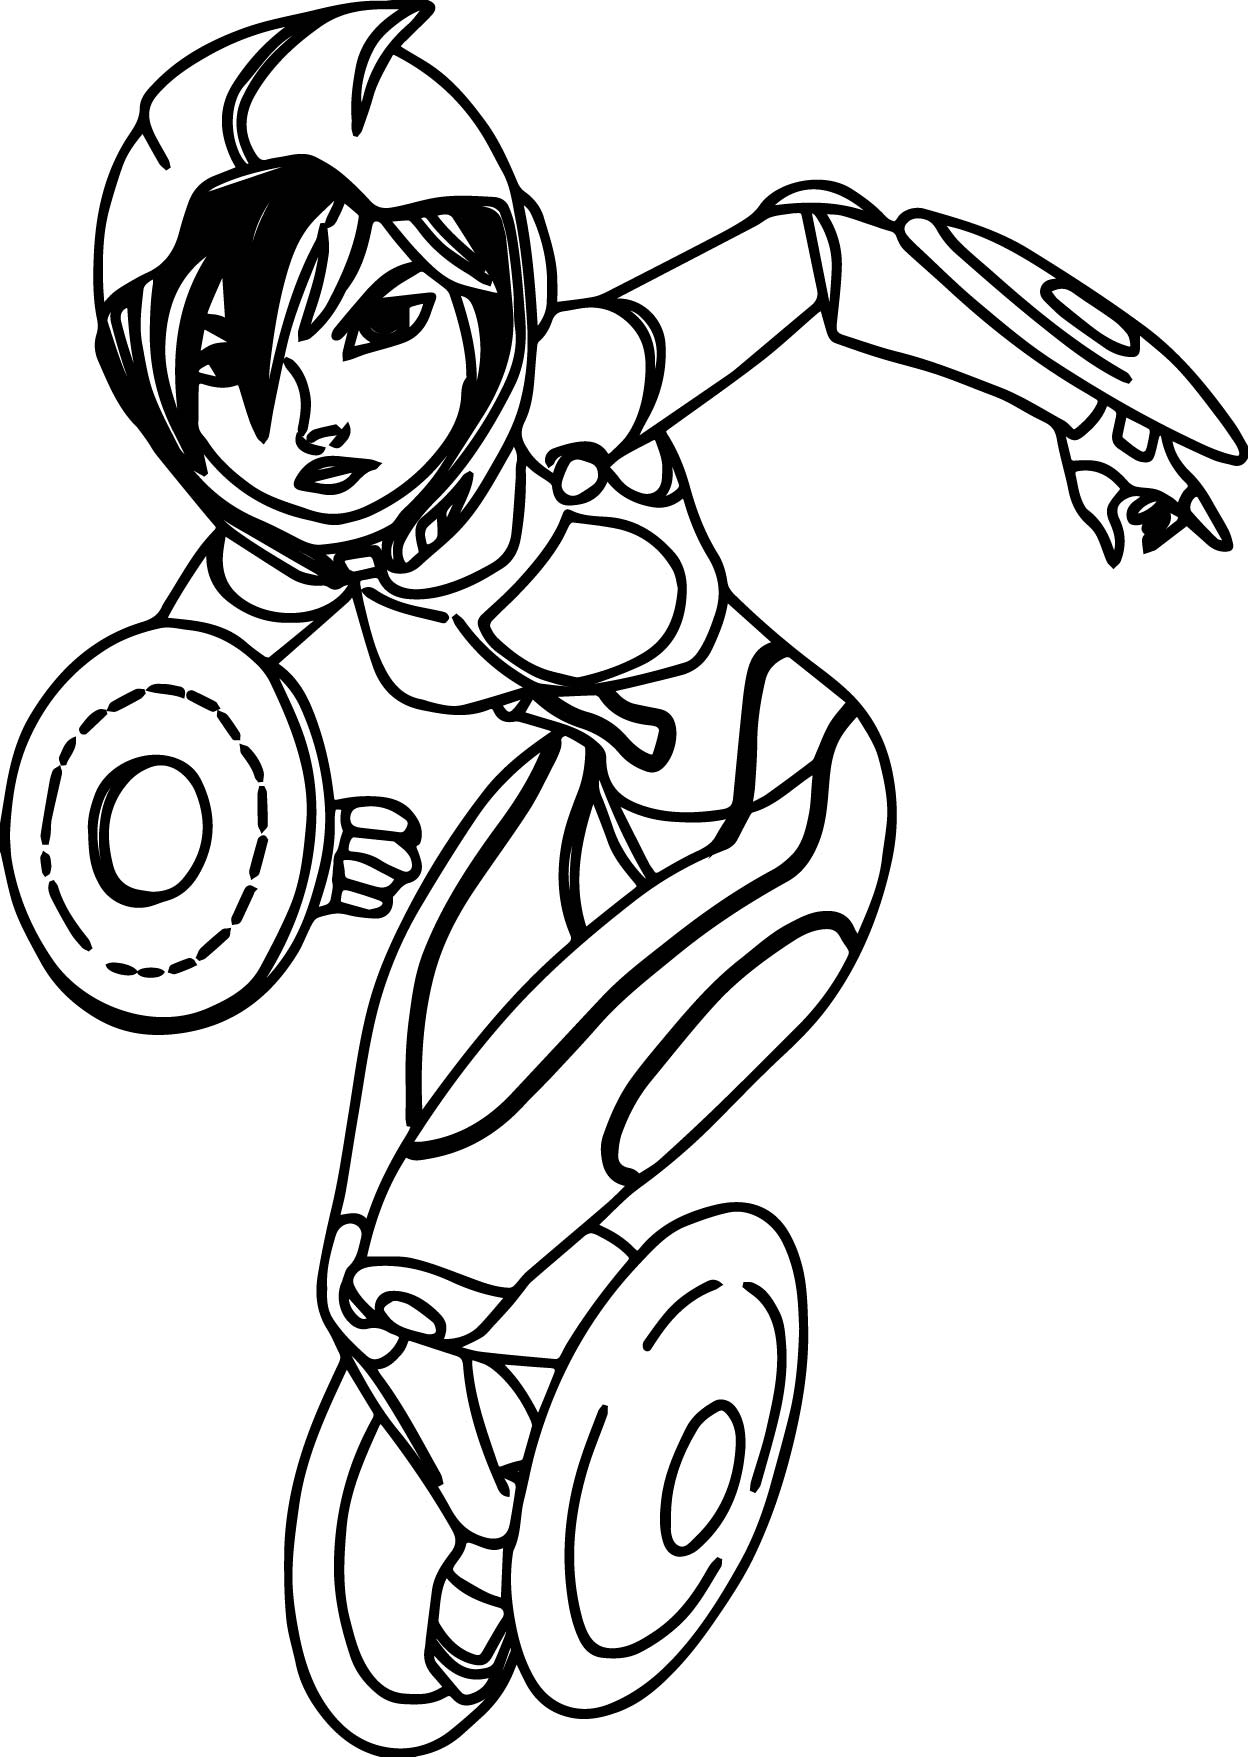 1248x1757 Big Hero 6 Characters Gogo Tomago Coloring Page Wecoloringpage